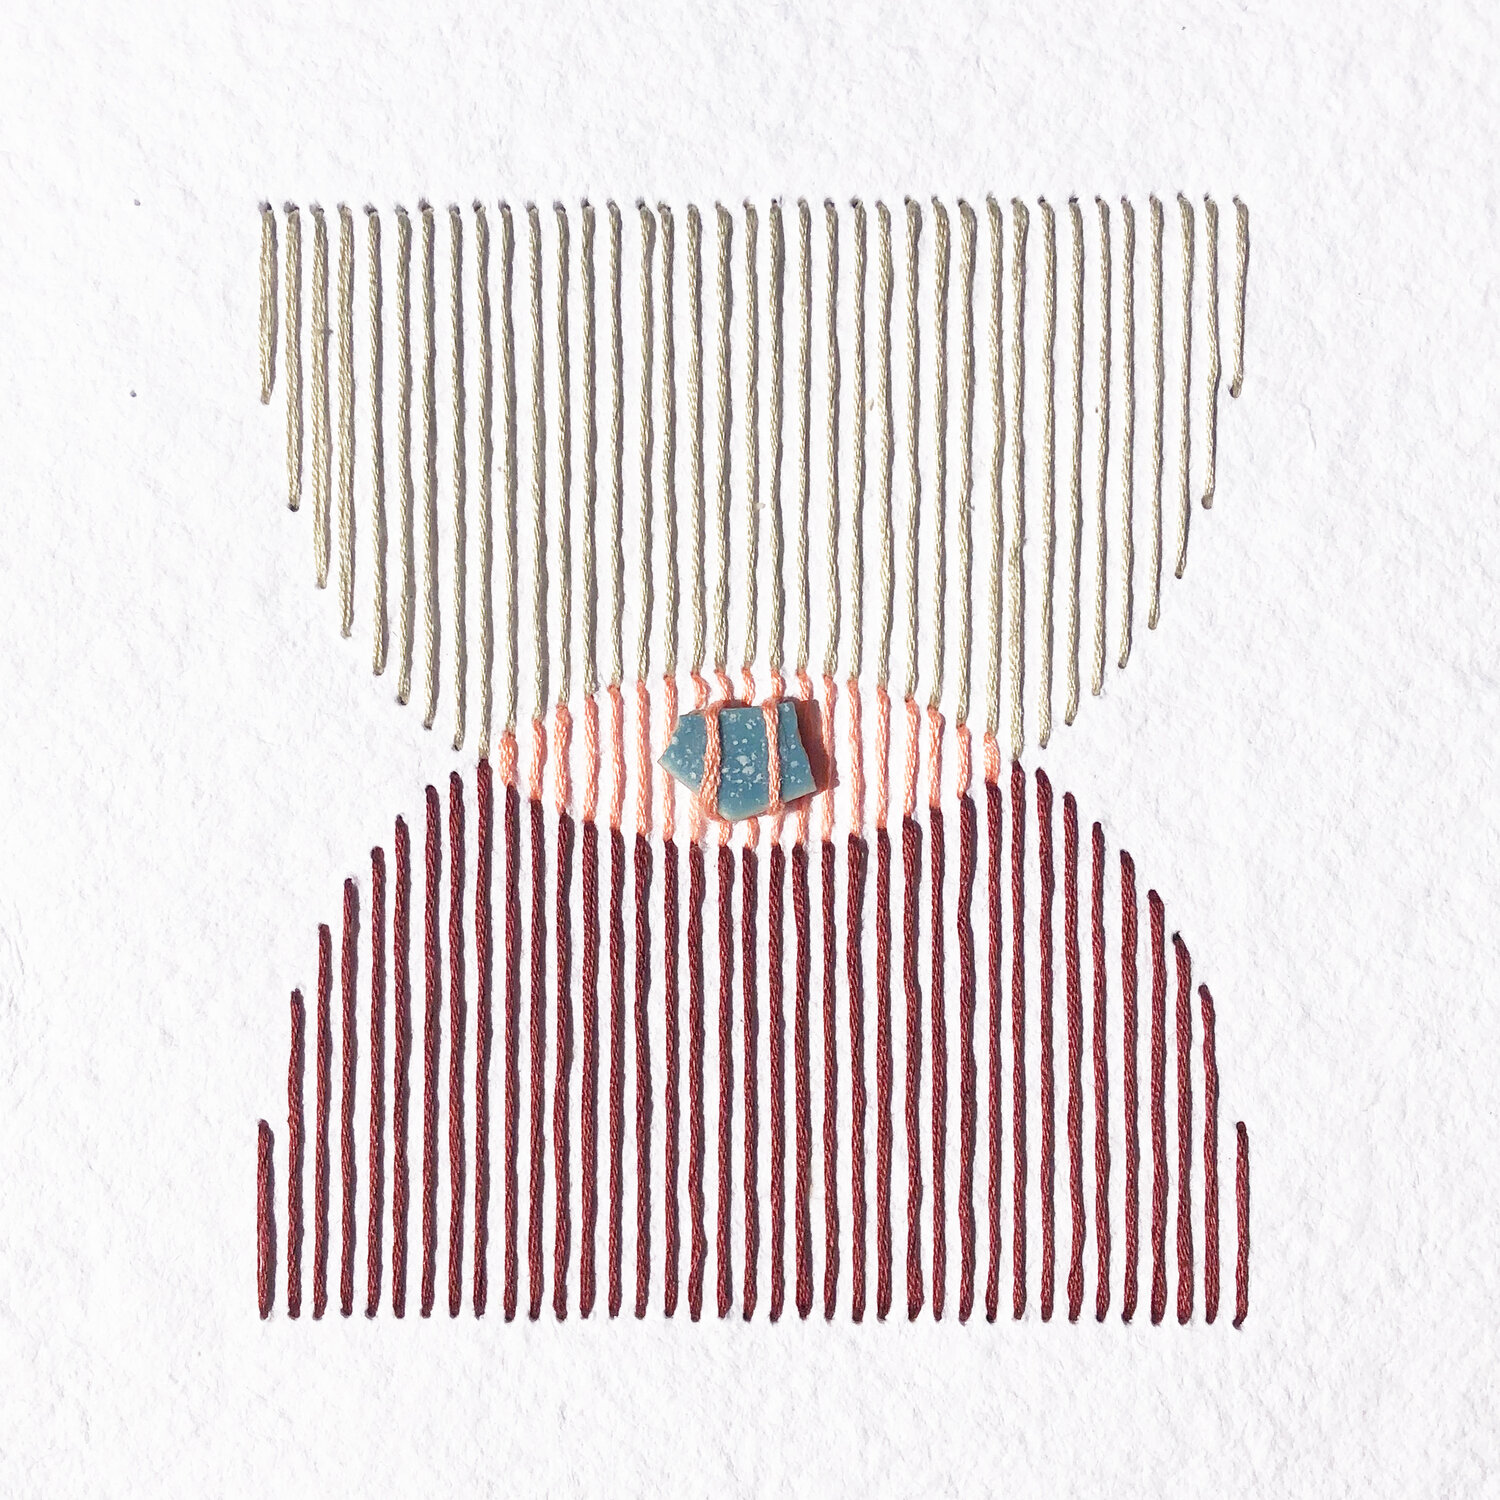 Natalie Ciccoricco's Meticulously Talented Embroidery on Paper